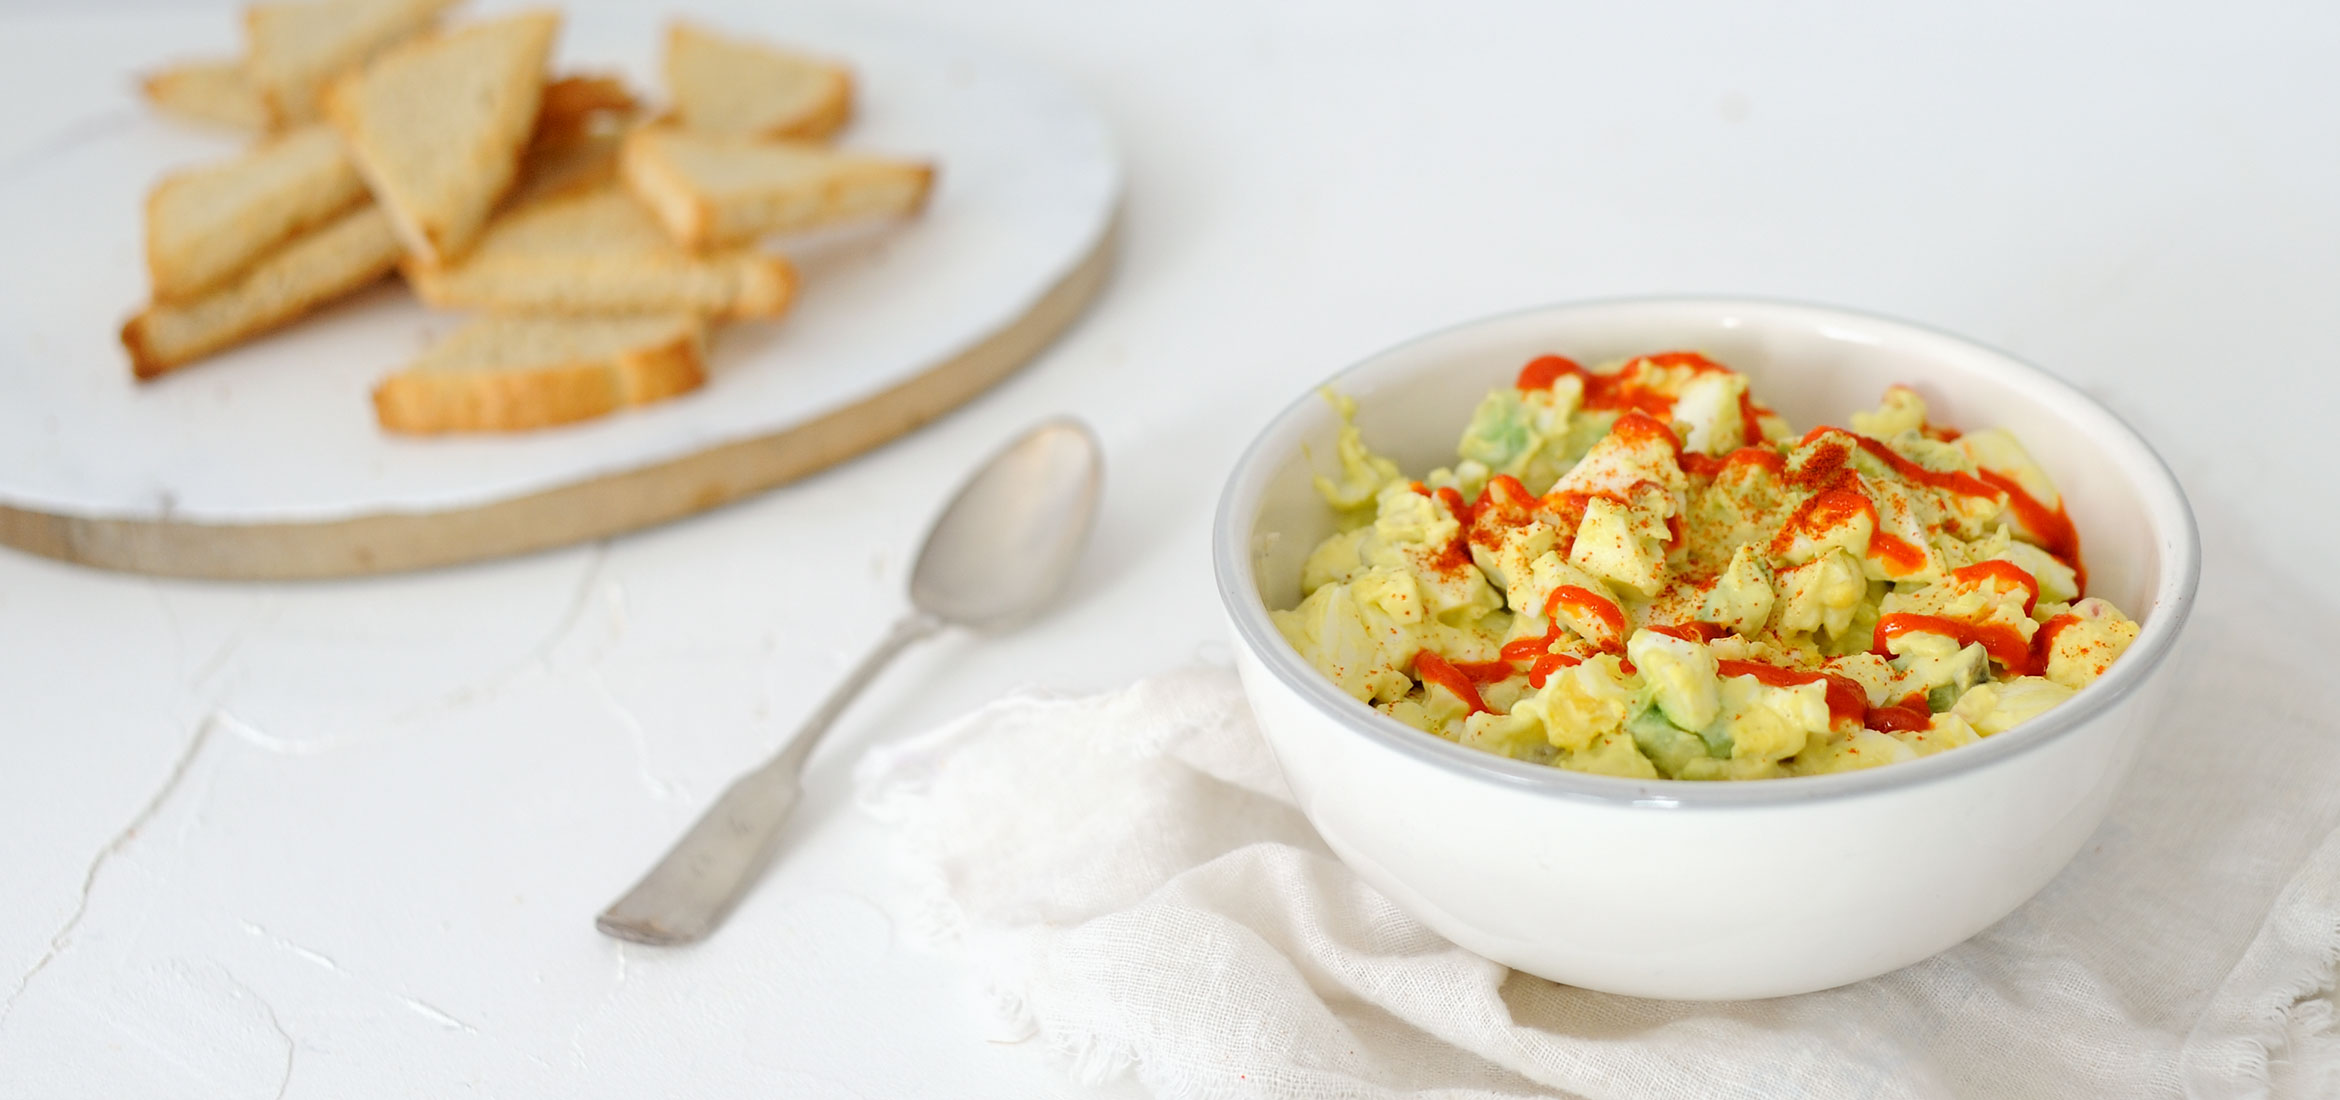 Spicy Avocado & Deviled Egg Dip